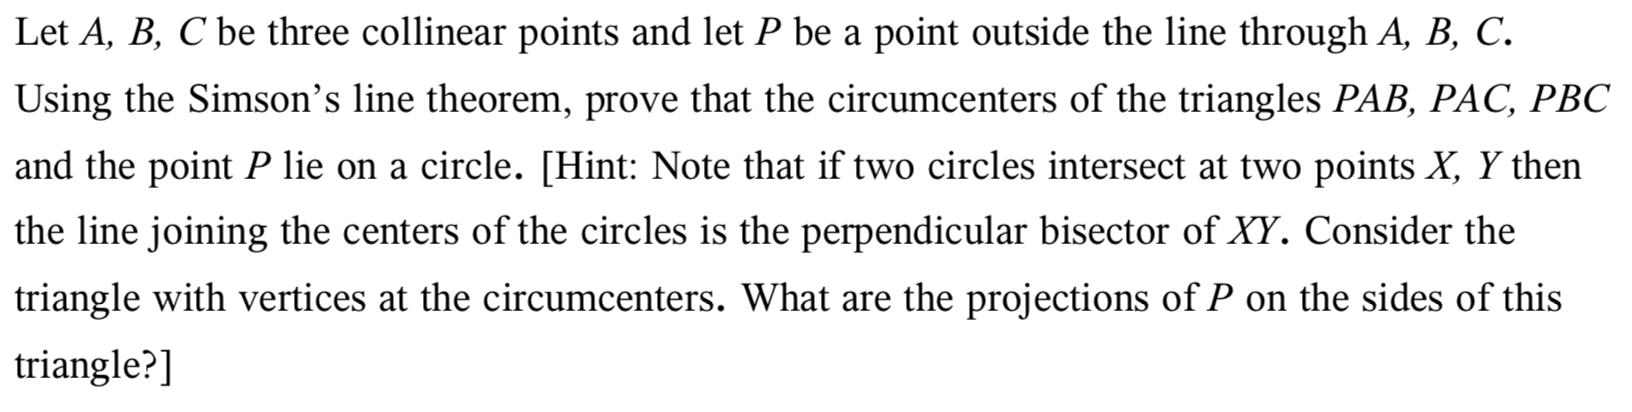 Let A, B, C be three collinear points and let P be a point outside the line through A, B, C. Using the Simson's line theorem, prove that the circumcenters of the triangles PAB, PAC, PBC and the point P lie on a circle. [Hint: Note that if two circles intersect at two points X, Y then the line joining the centers of the circles is the perpendicular bisector of XY. Consider the triangle with vertices at the circumcenters. What are the projections ofP on the sides of this triangle?]